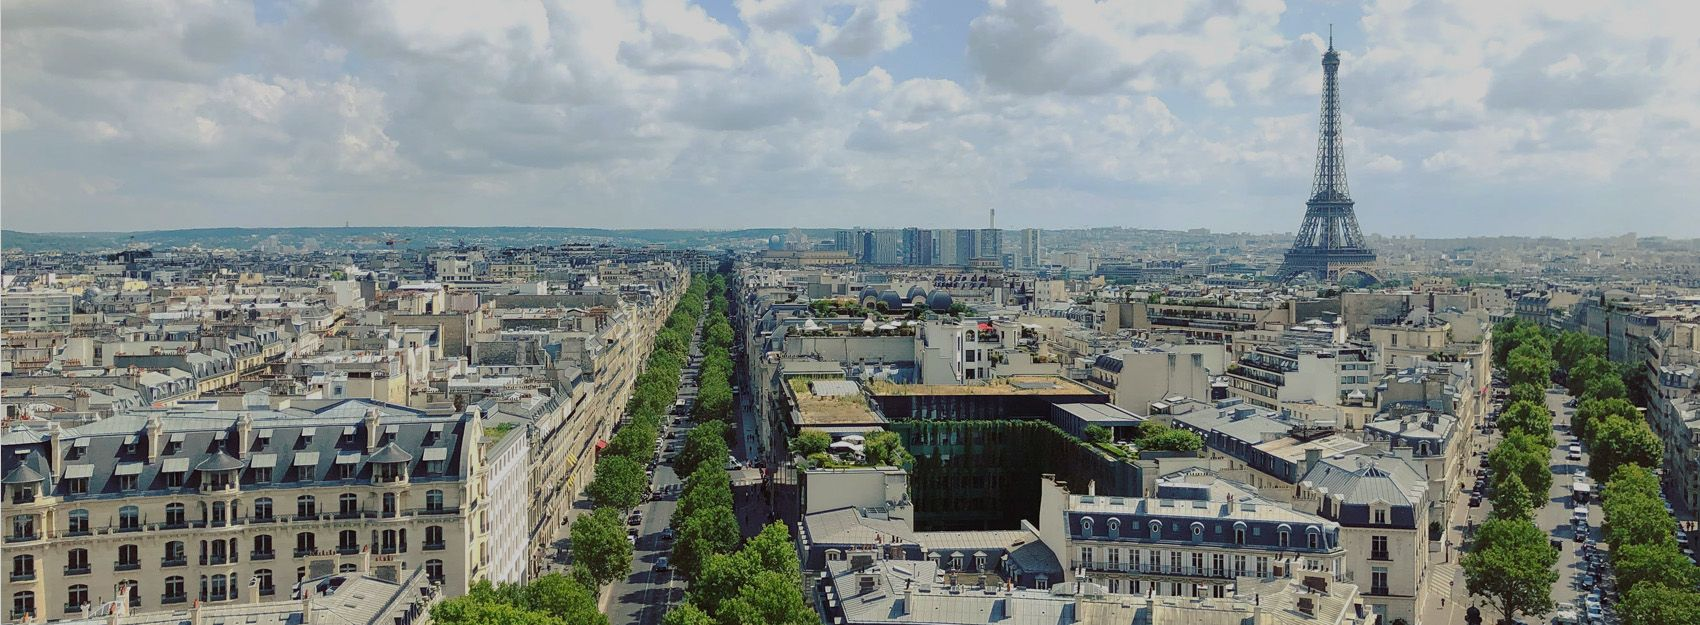 view of the eiffel tower from the arc de triomphe taken by paris study abroad student